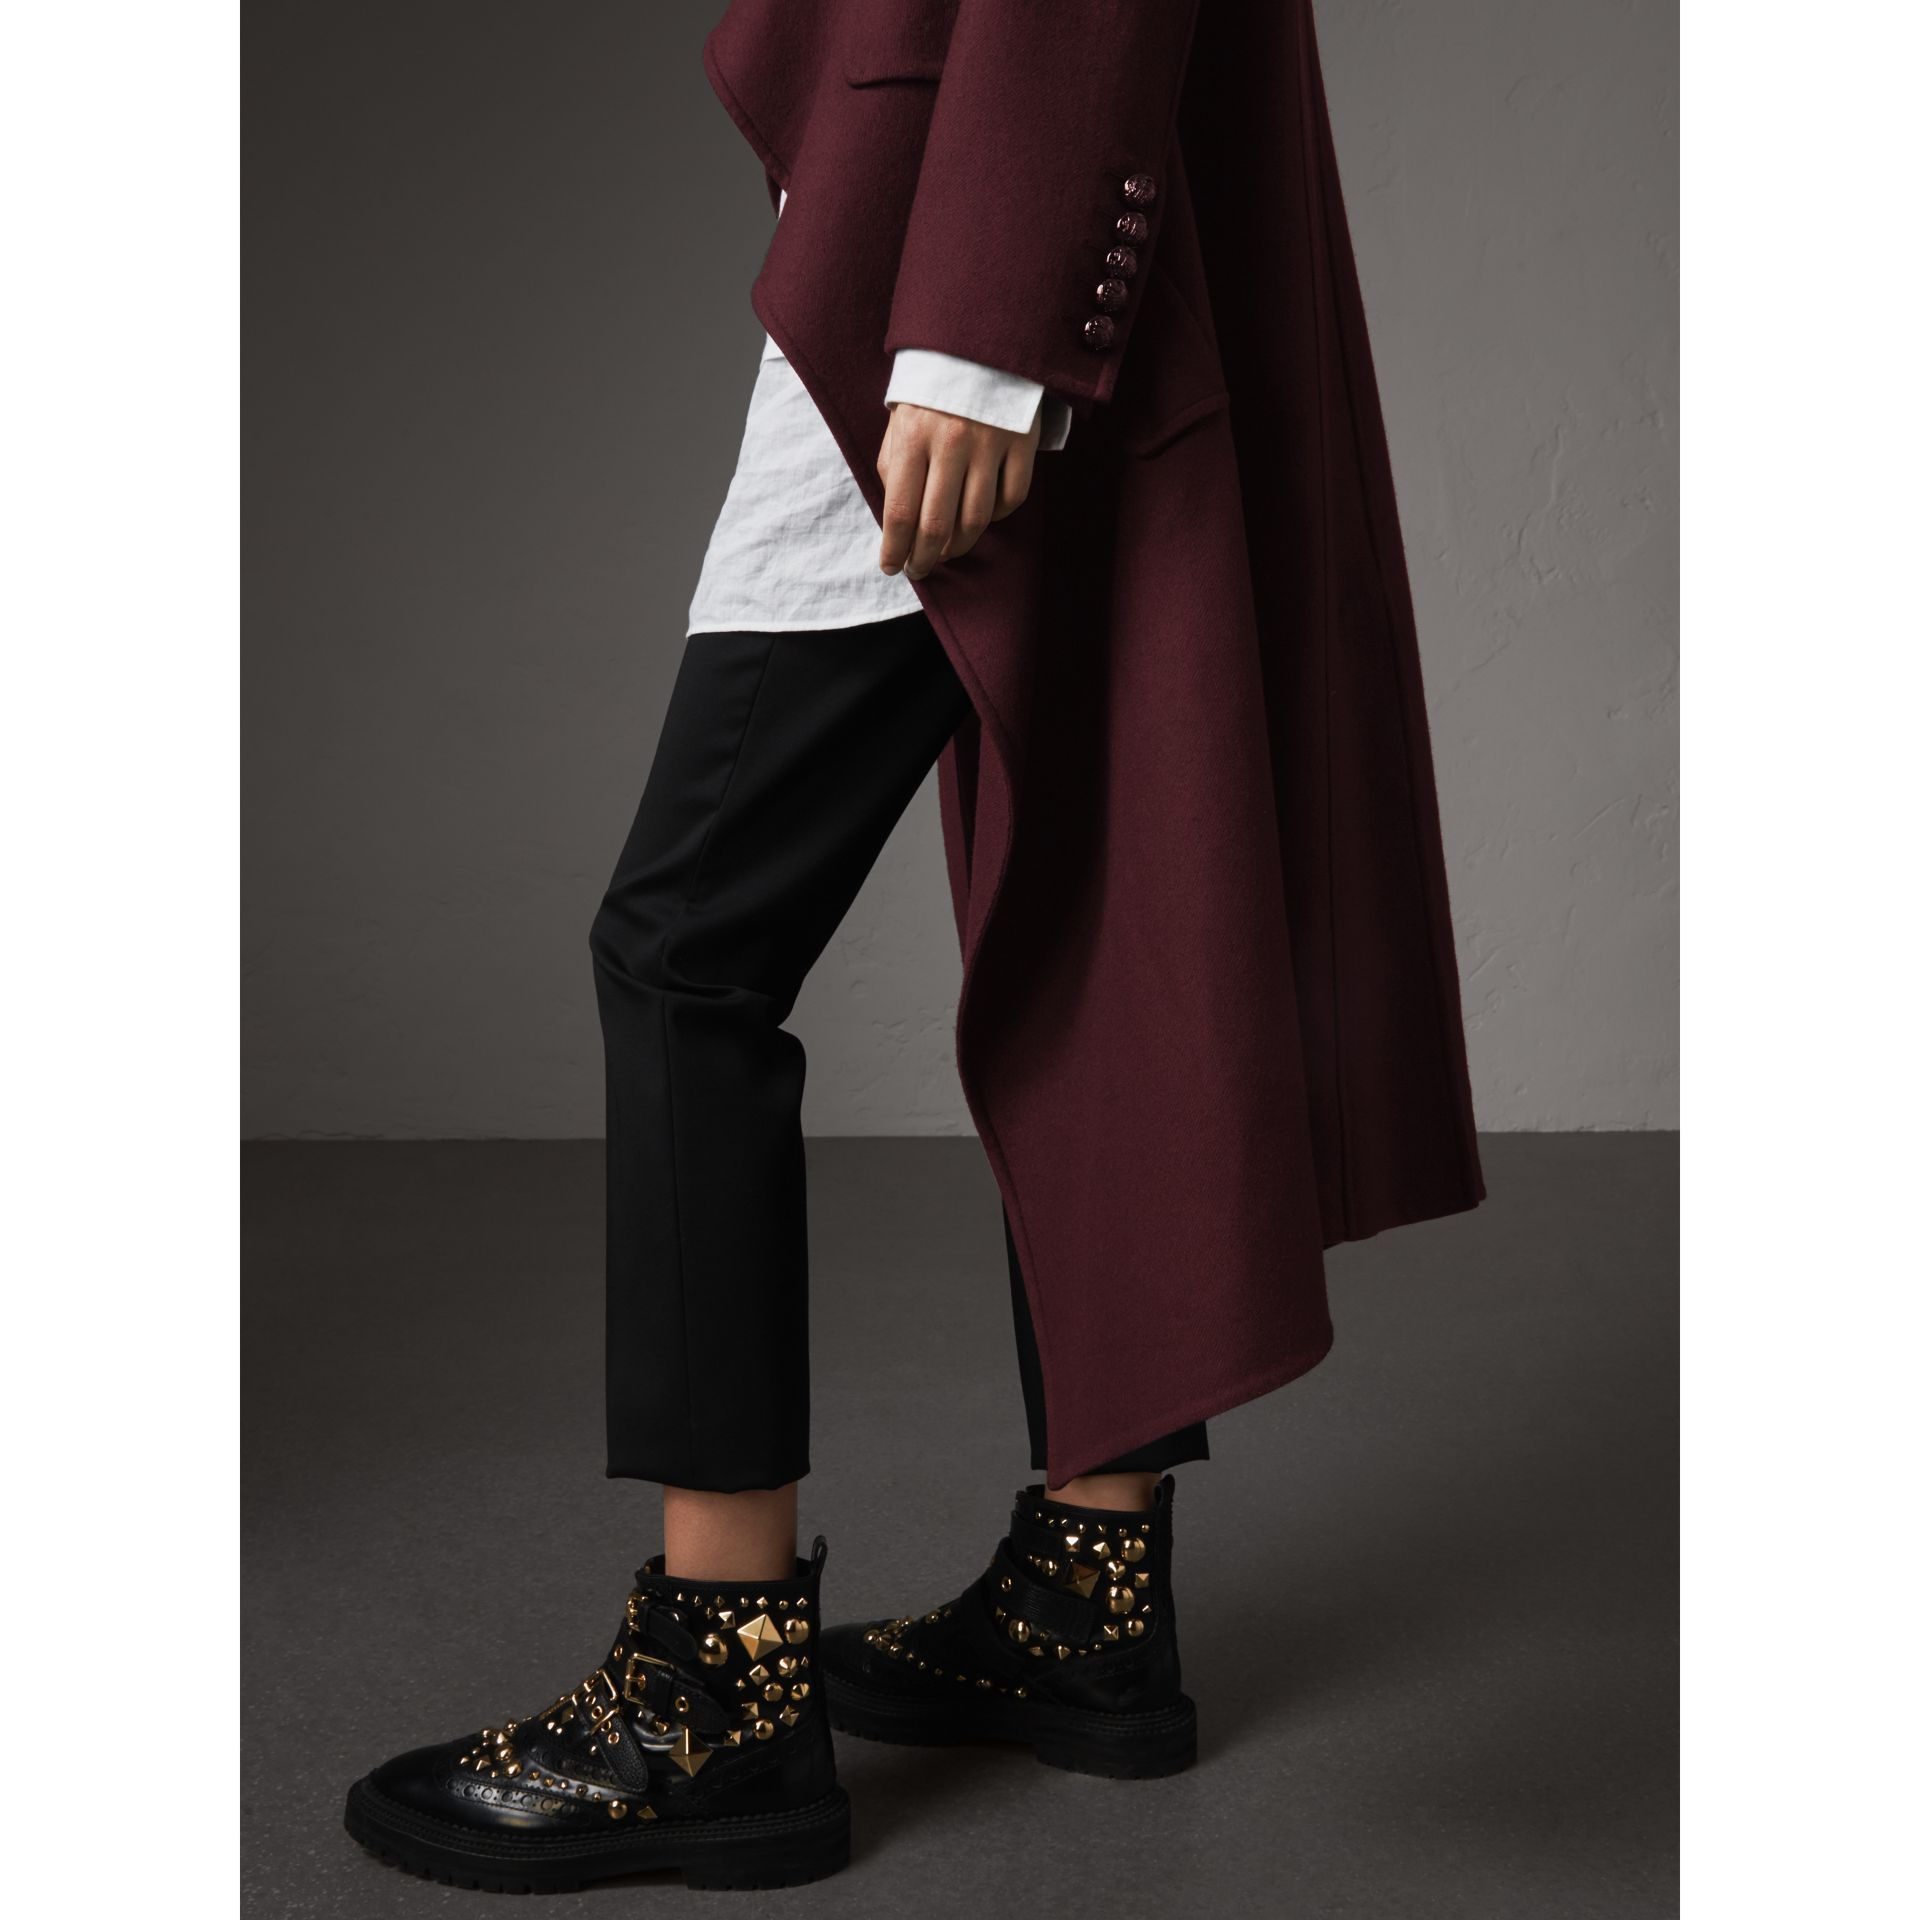 Manteau portefeuille en laine et cachemire double face (Bordeaux Intense) - Femme | Burberry - photo de la galerie 2